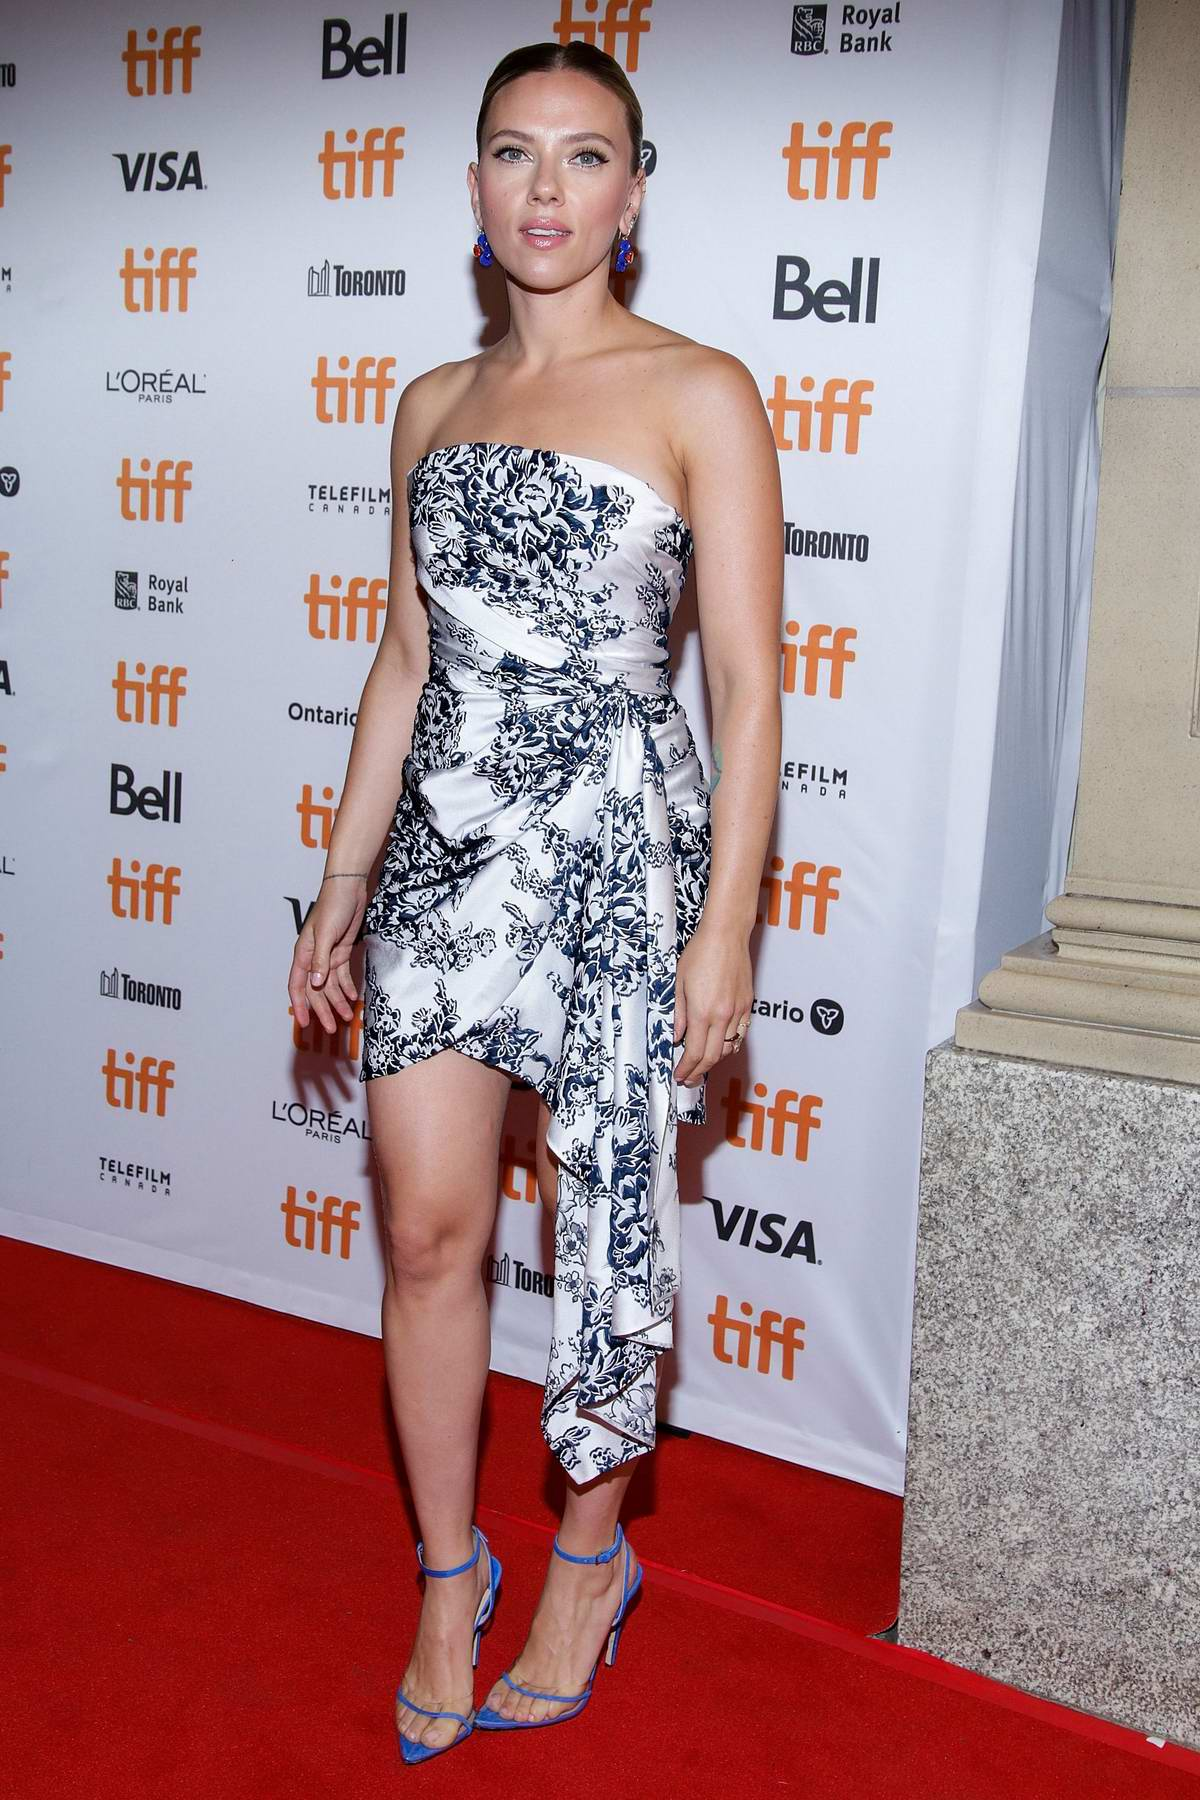 Scarlett Johansson attends 'Marriage Story' Premiere during the 2019 Toronto International Film Festival in Toronto, Canada